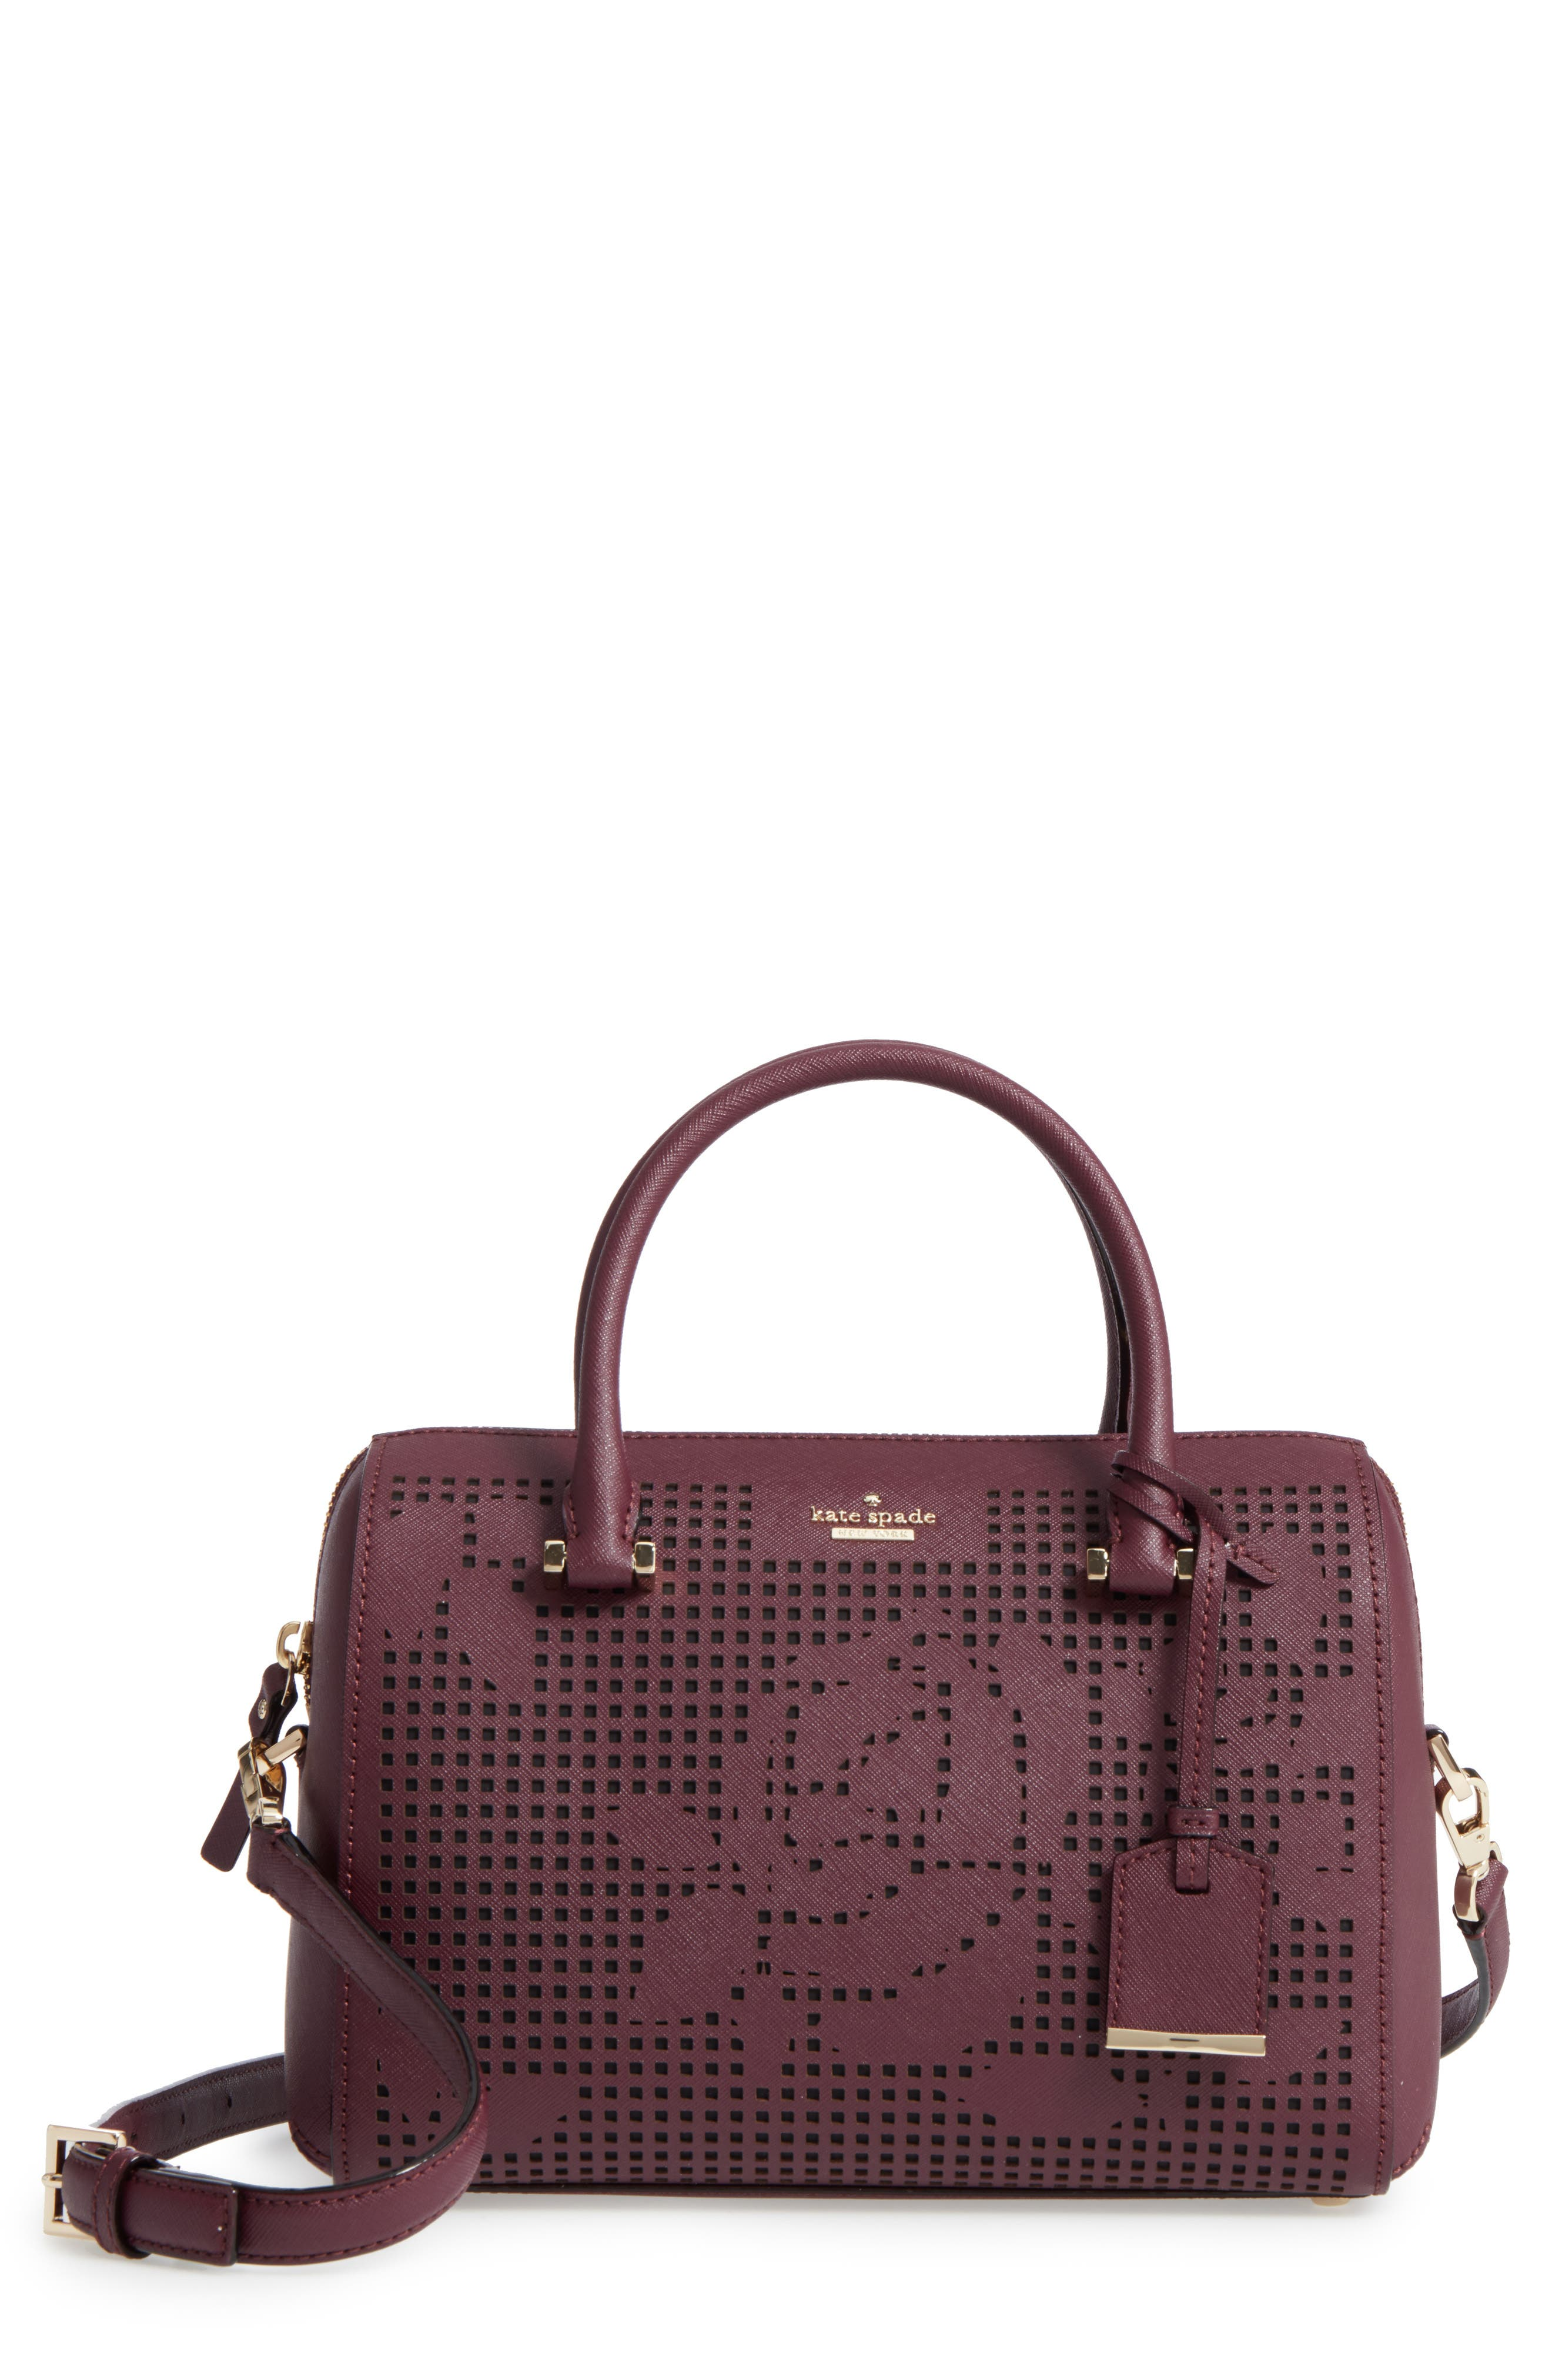 Alternate Image 1 Selected - kate spade new york cameron street - large lane leather satchel